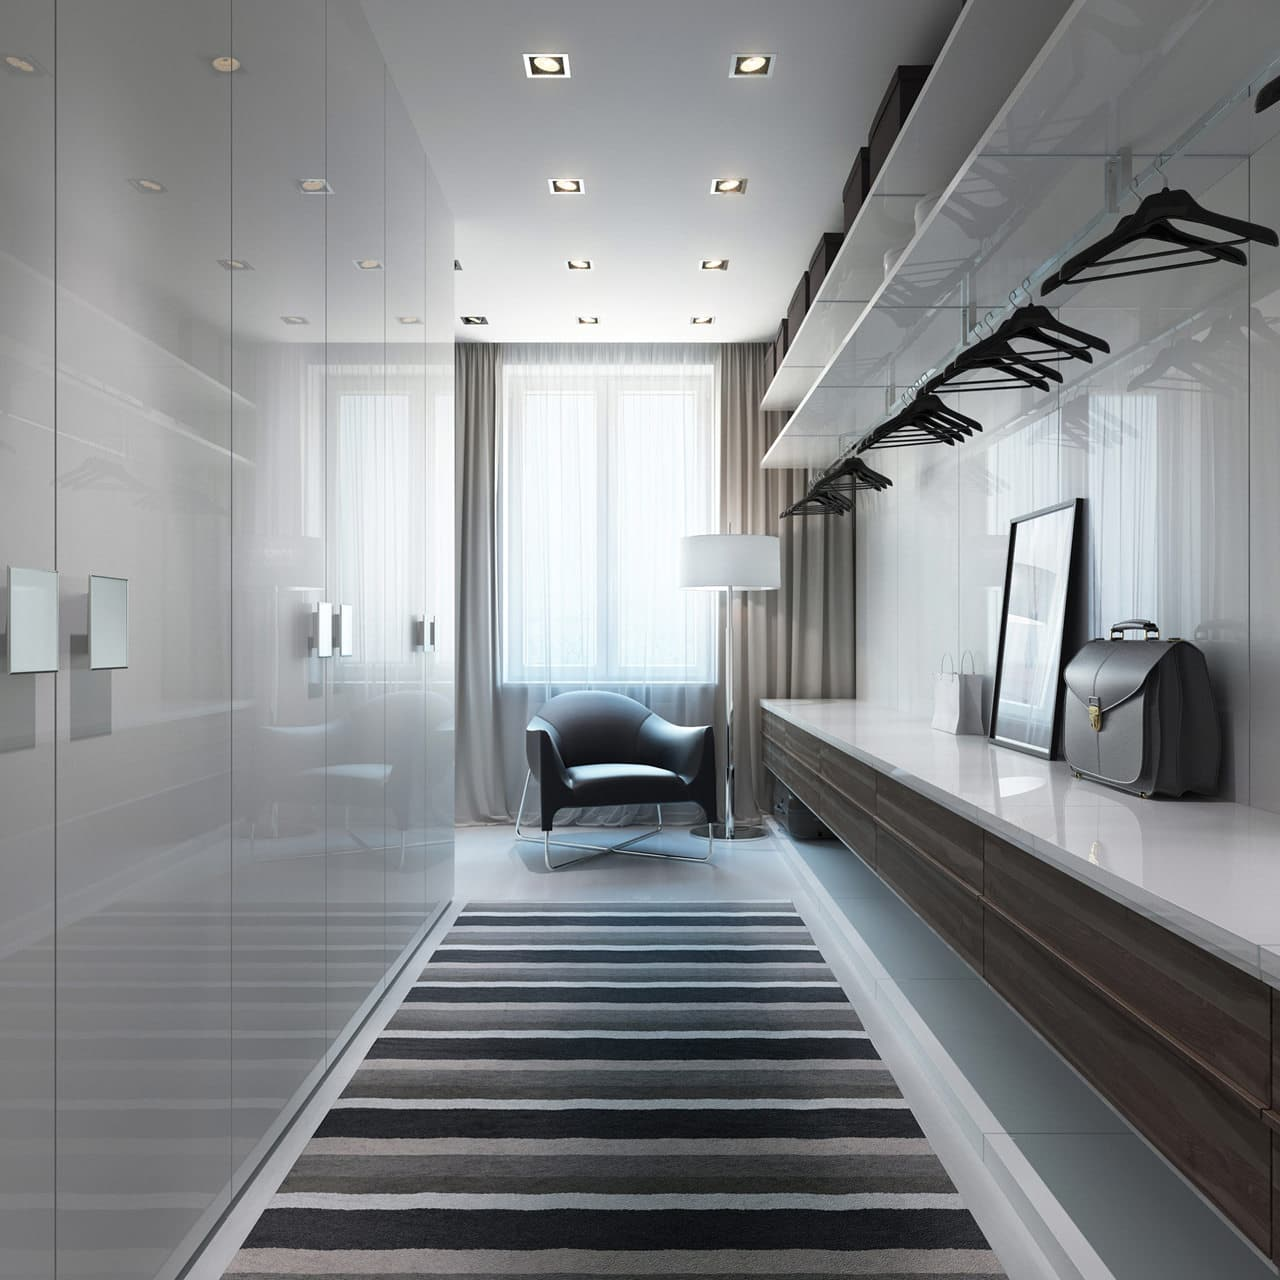 Decoraci n de interiores modernos - Wendy o brien interior planning design ...